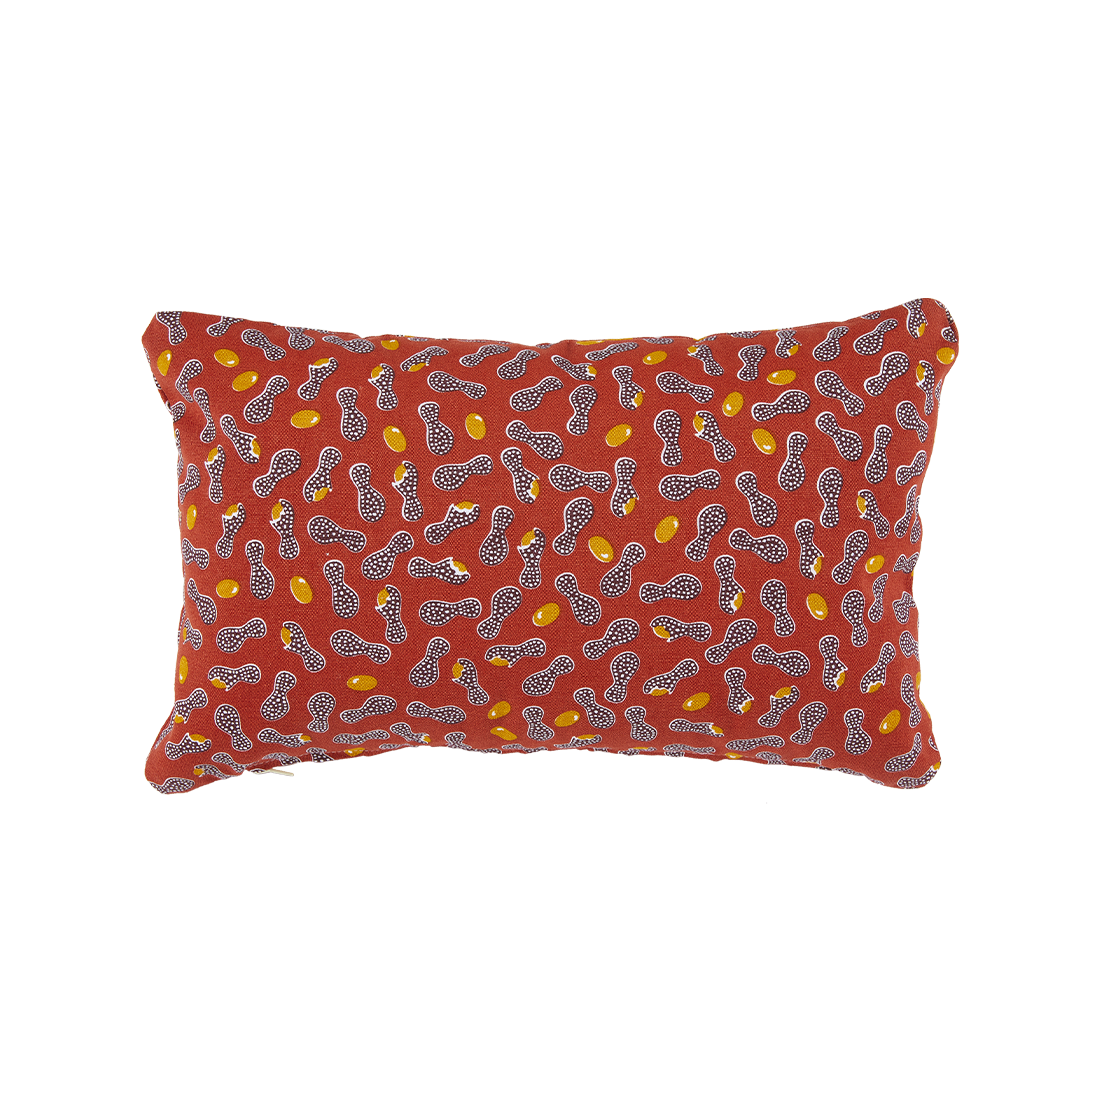 COUSSIN CACAHUETES 44x30